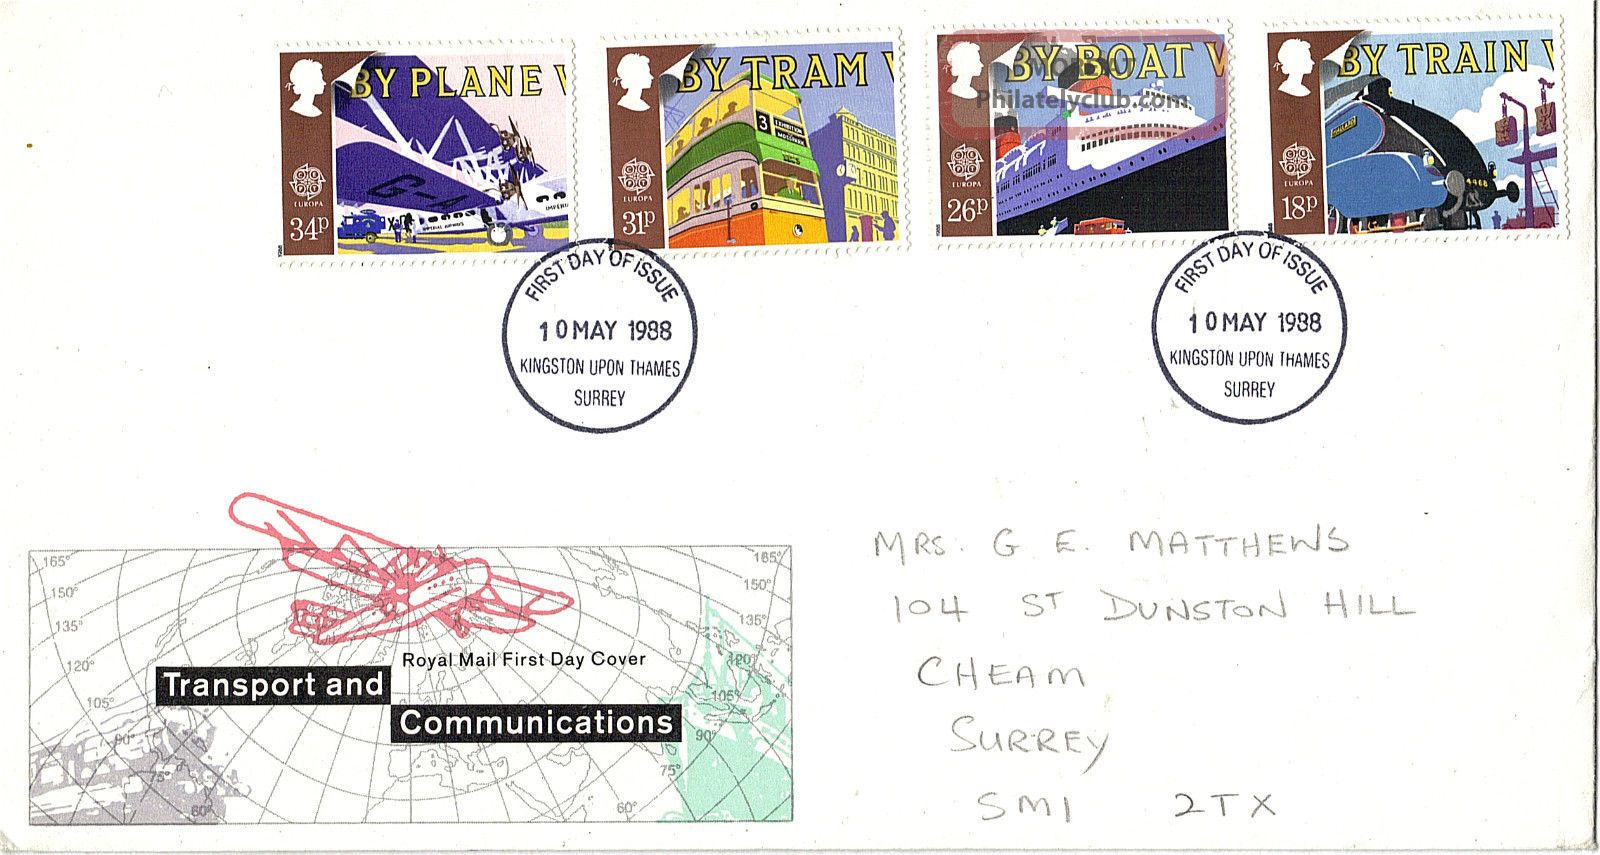 10 May 1988 Transport & Communication Rm First Day Cover Kingston U Thames Fdi Transportation photo